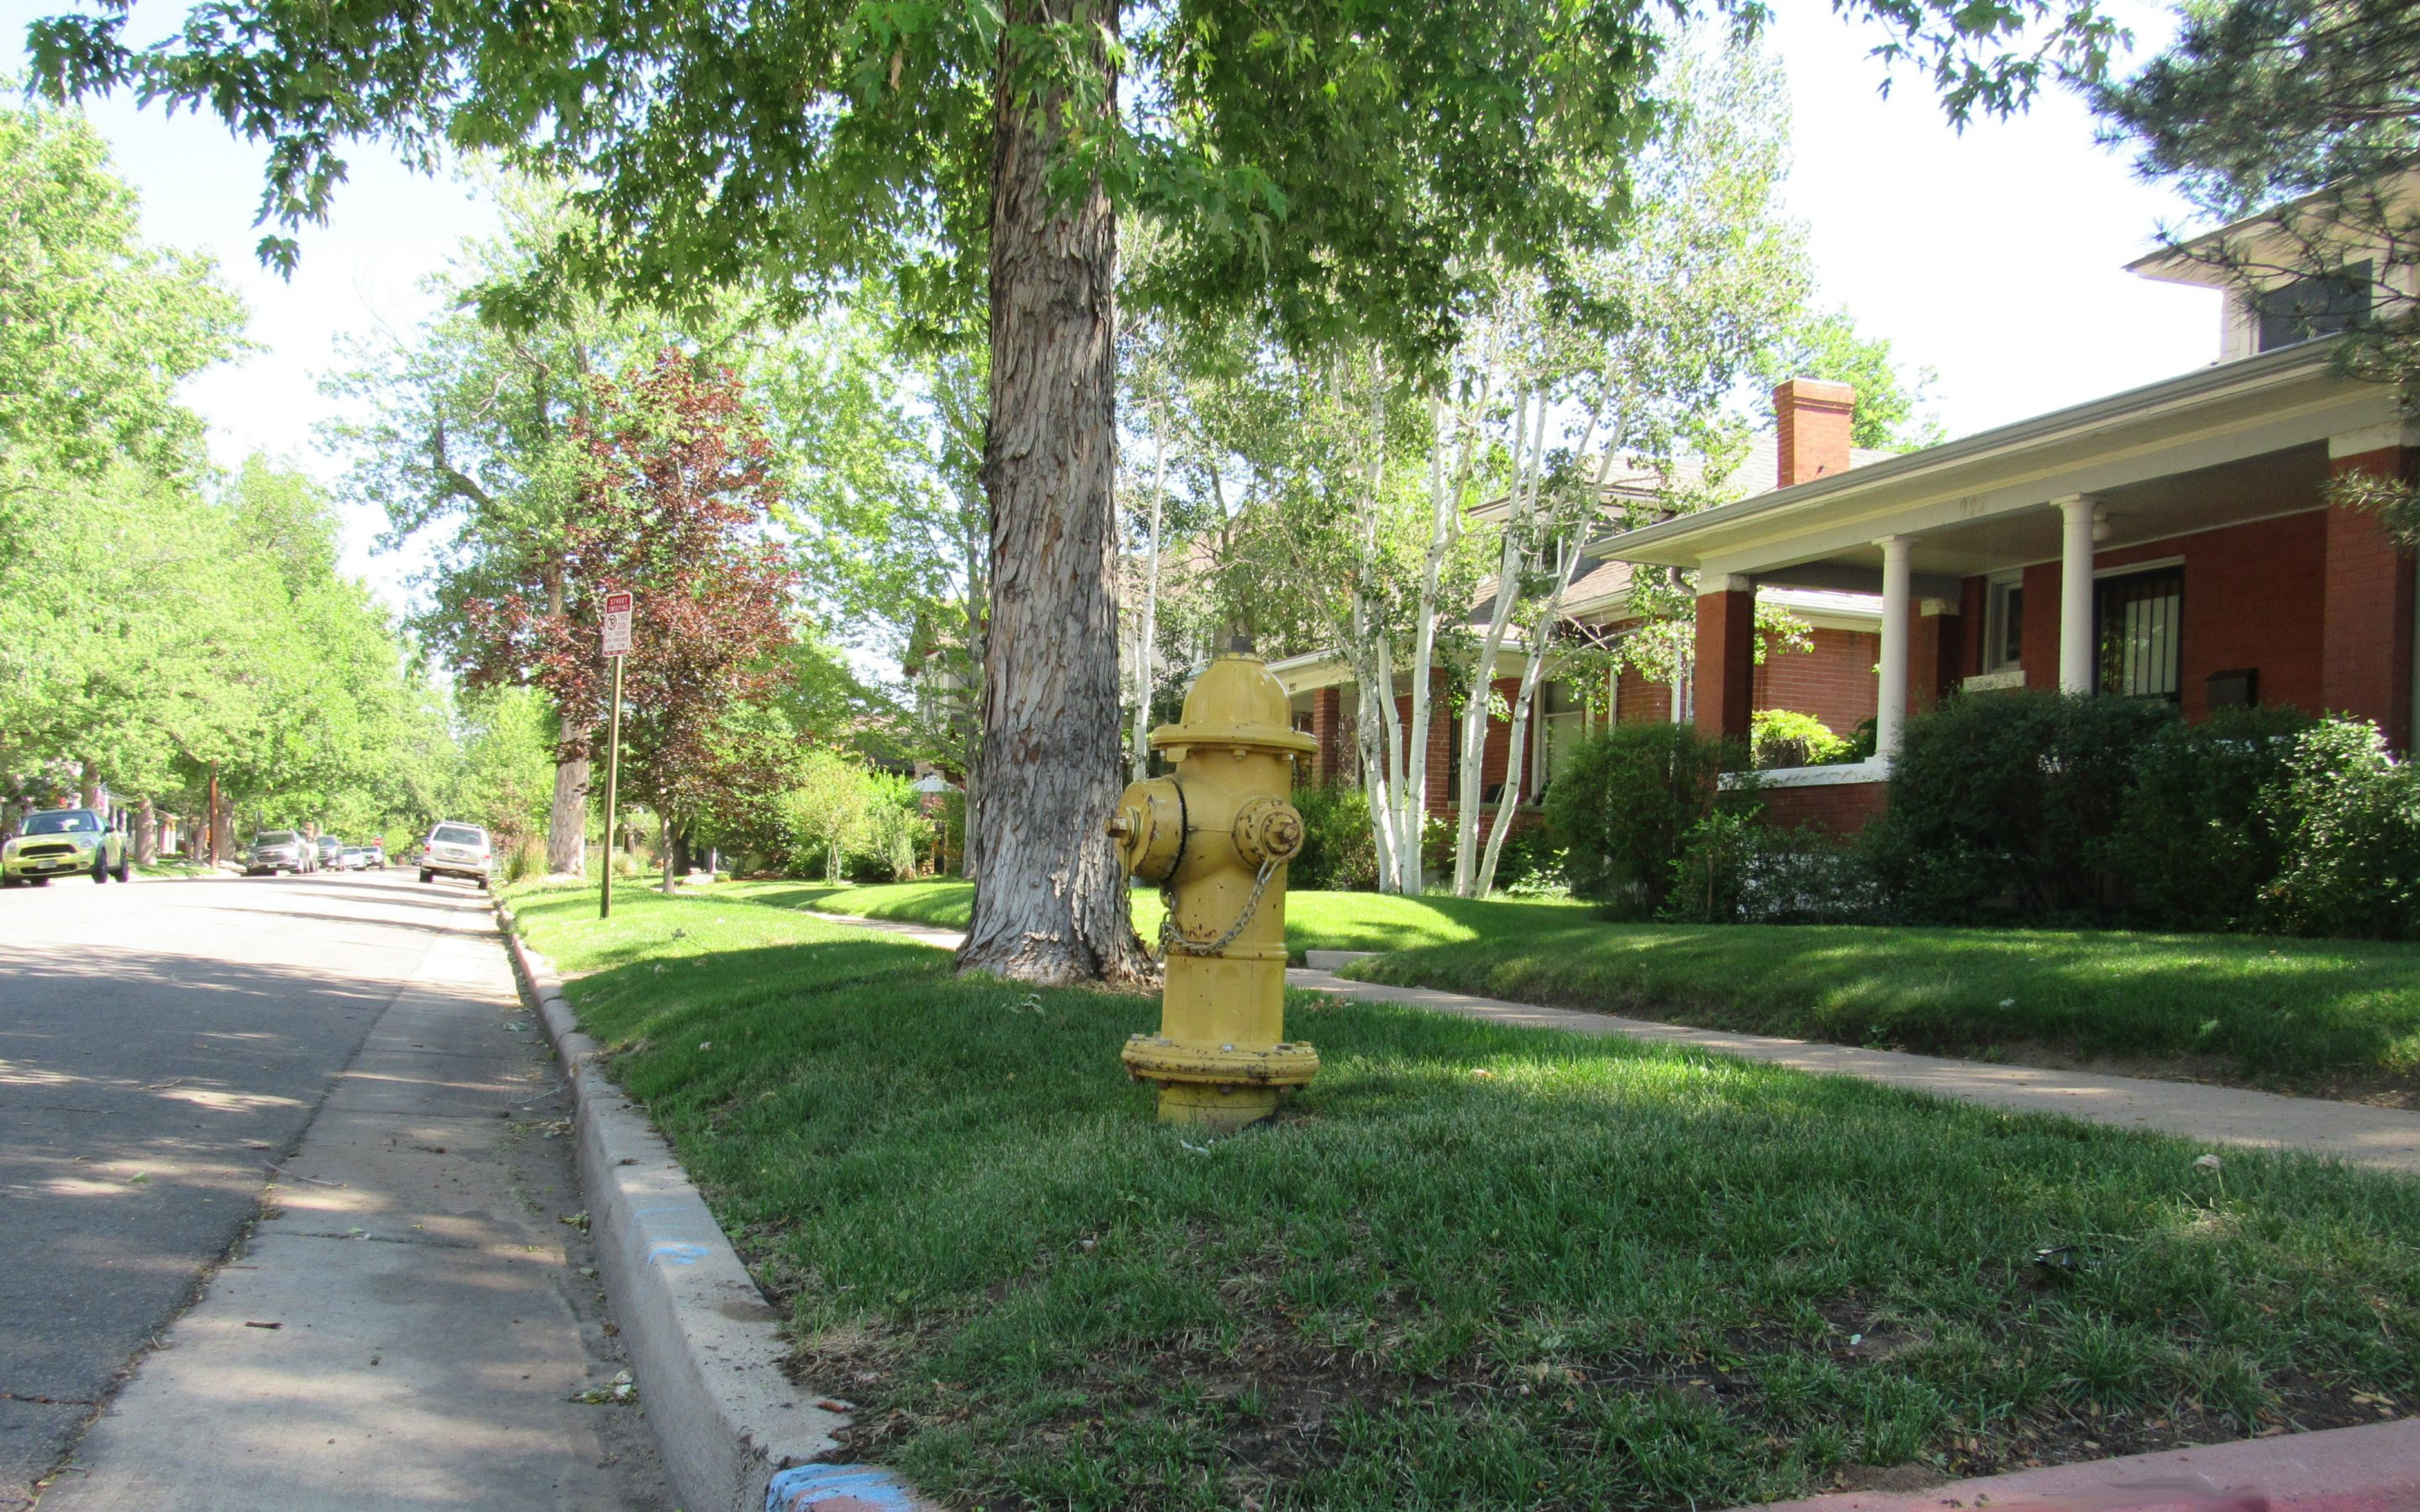 A water hydrant in Denver. Colorado residents, after years of drought, are learning to use less water.